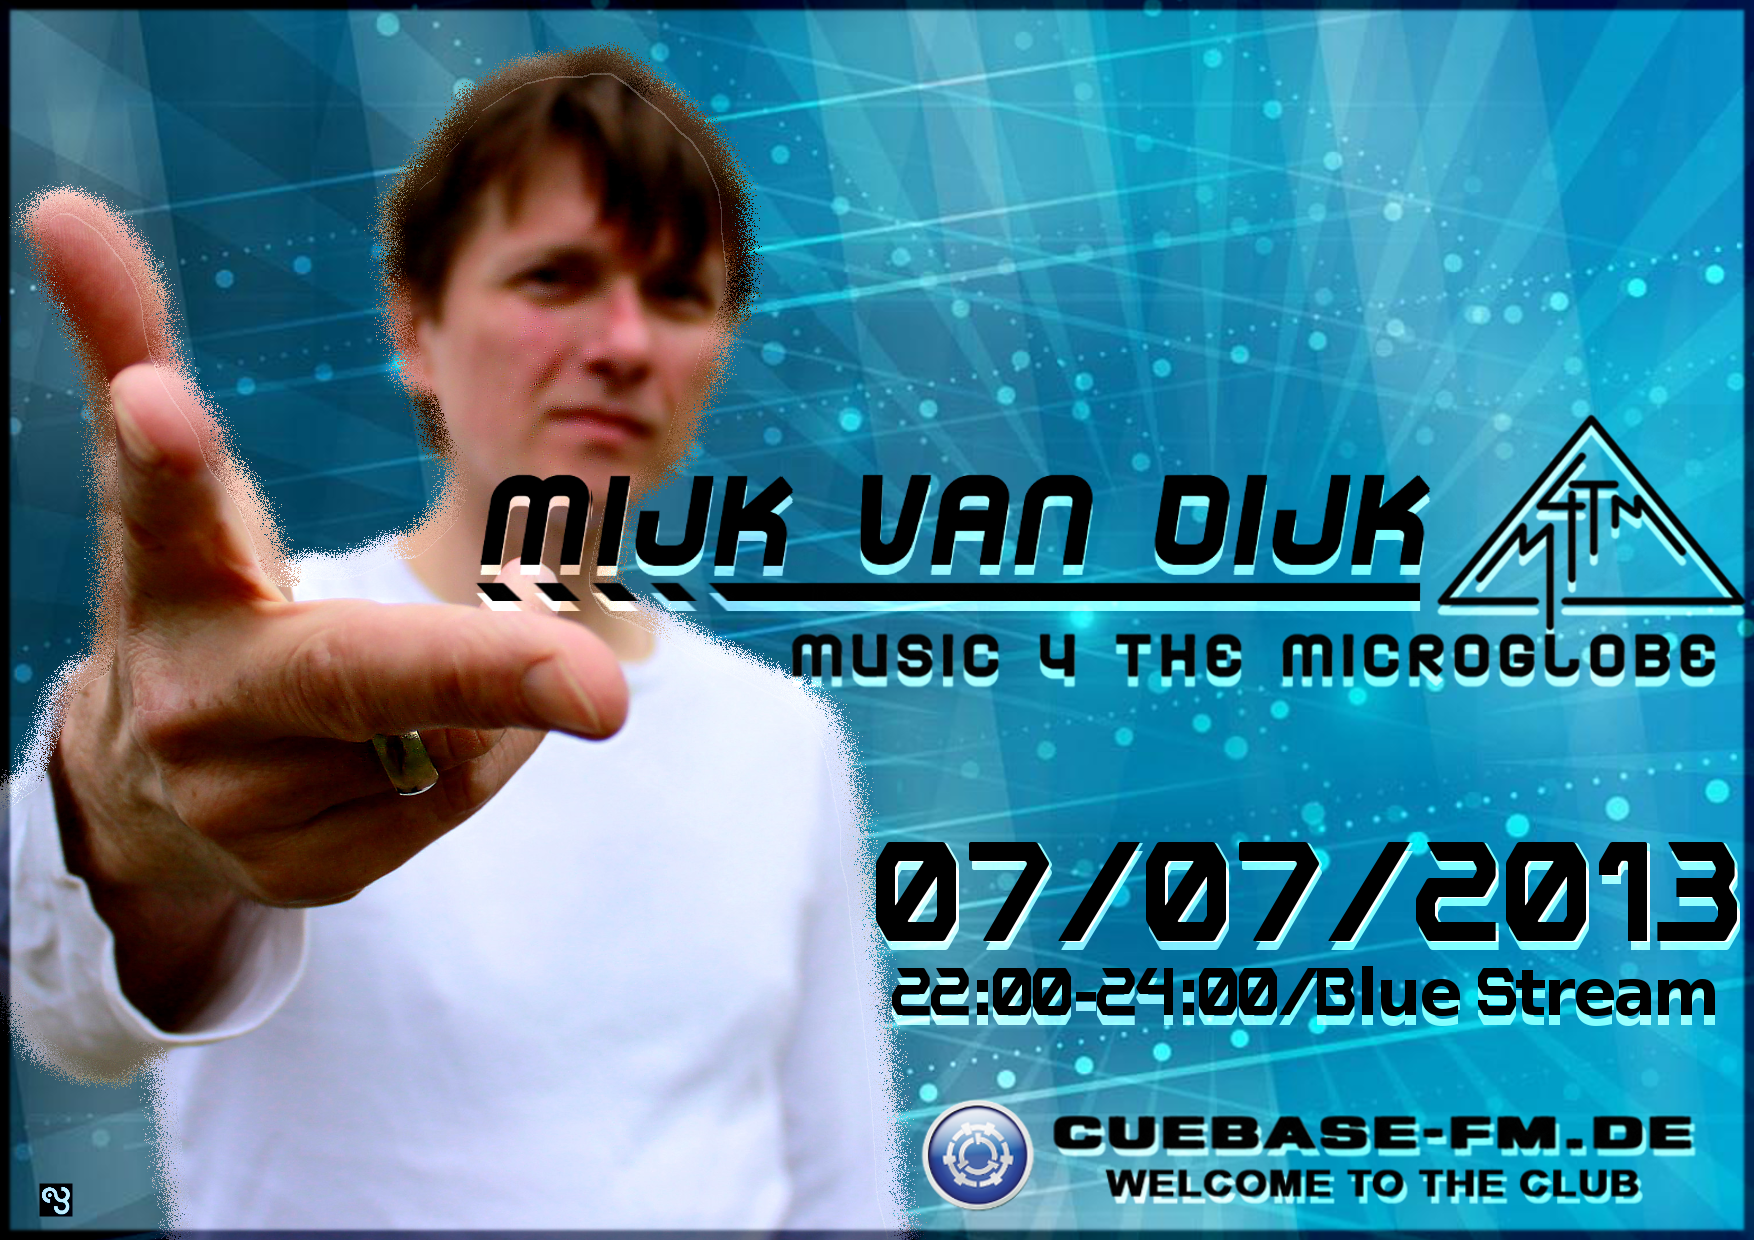 Flyer for Mijk van Dijk's show music 4 the microglobe, July 2013